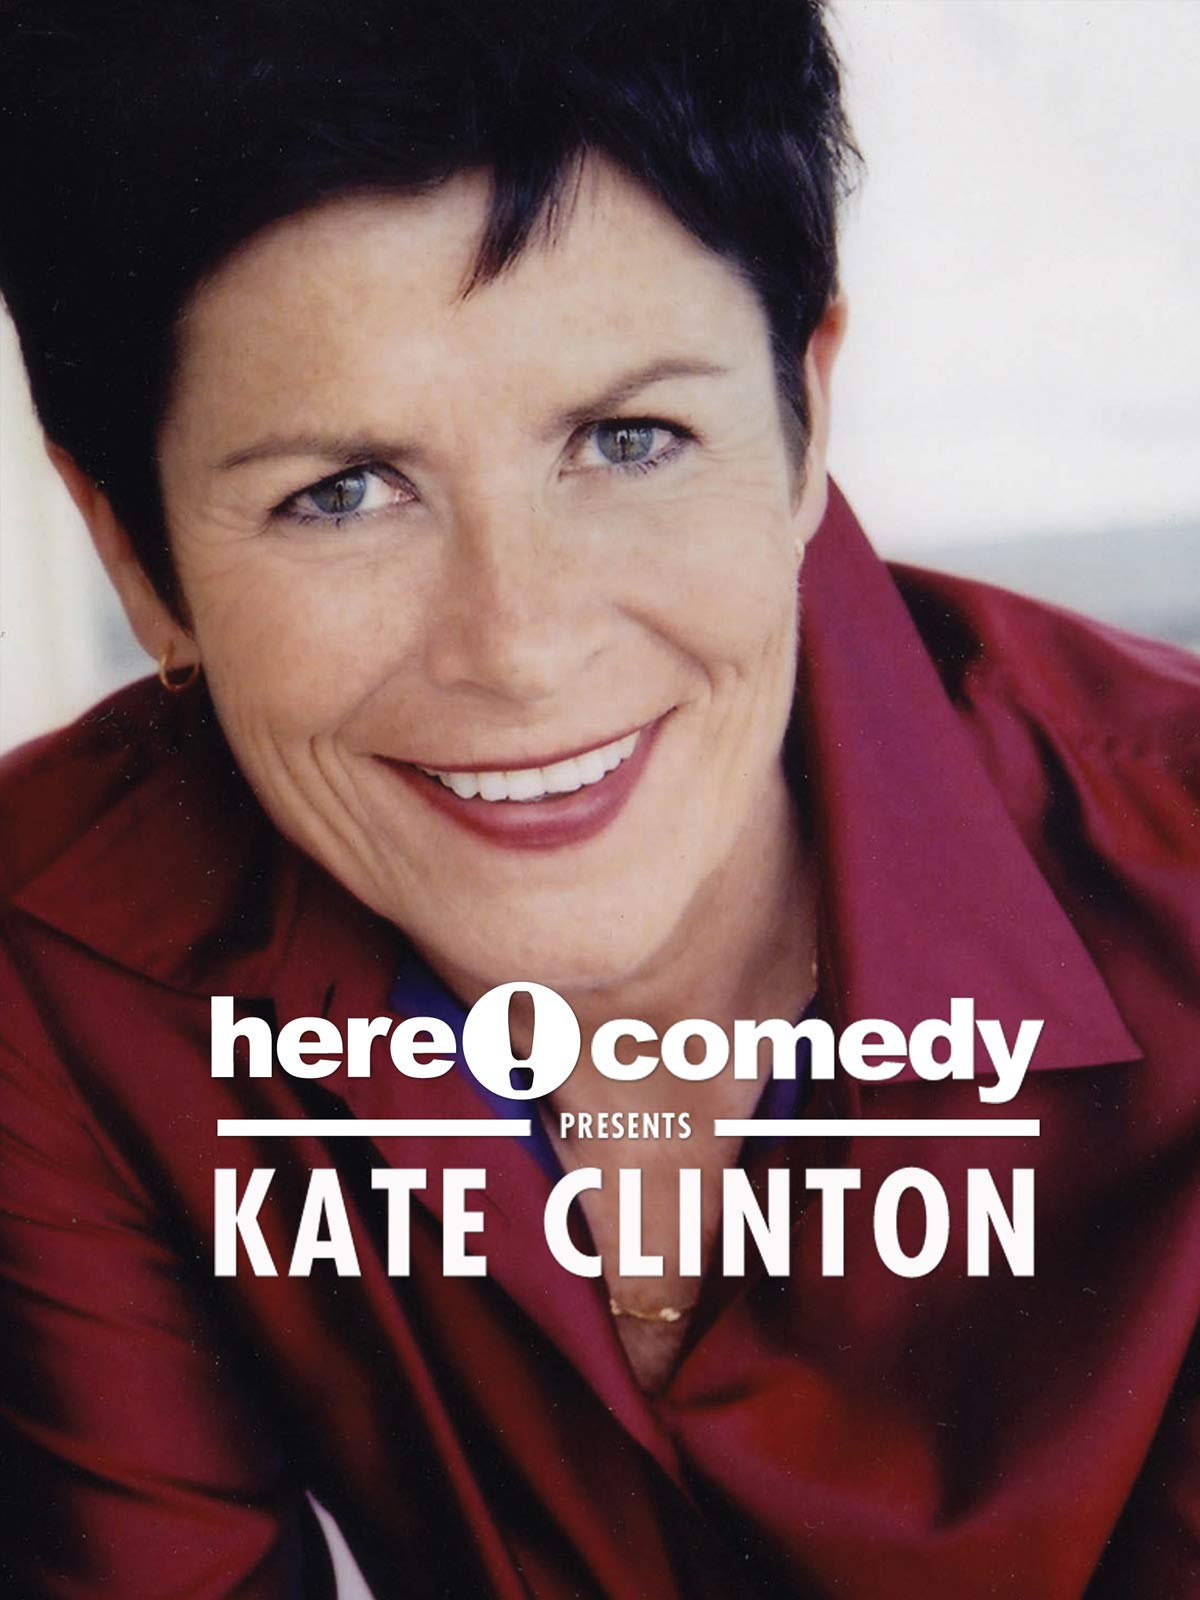 Here Comedy Presents Kate Clinton